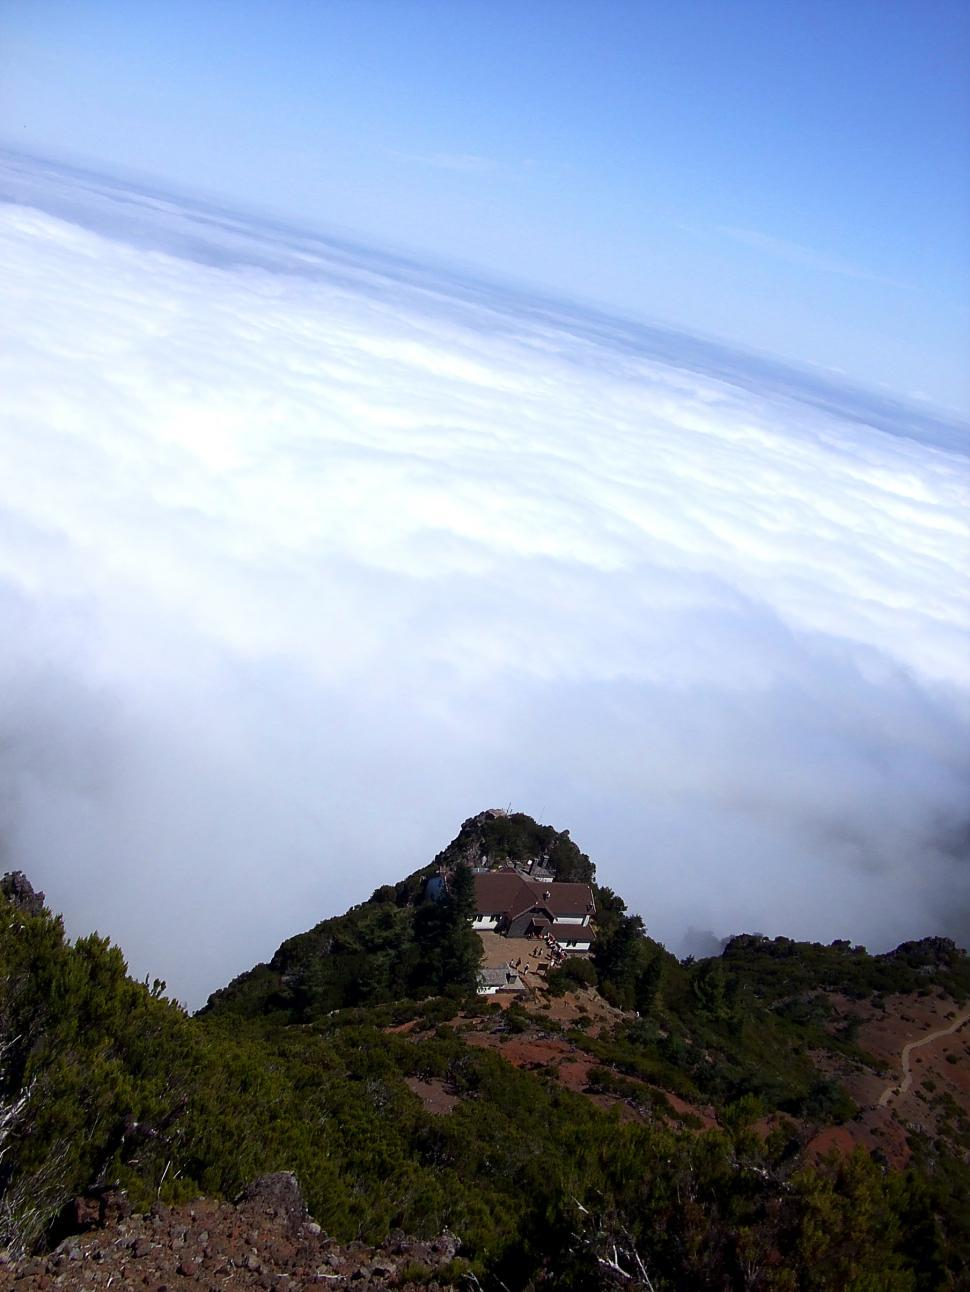 Download Free Stock Photo of Lodge in the high mountain above cloud level - Madeira Island vo